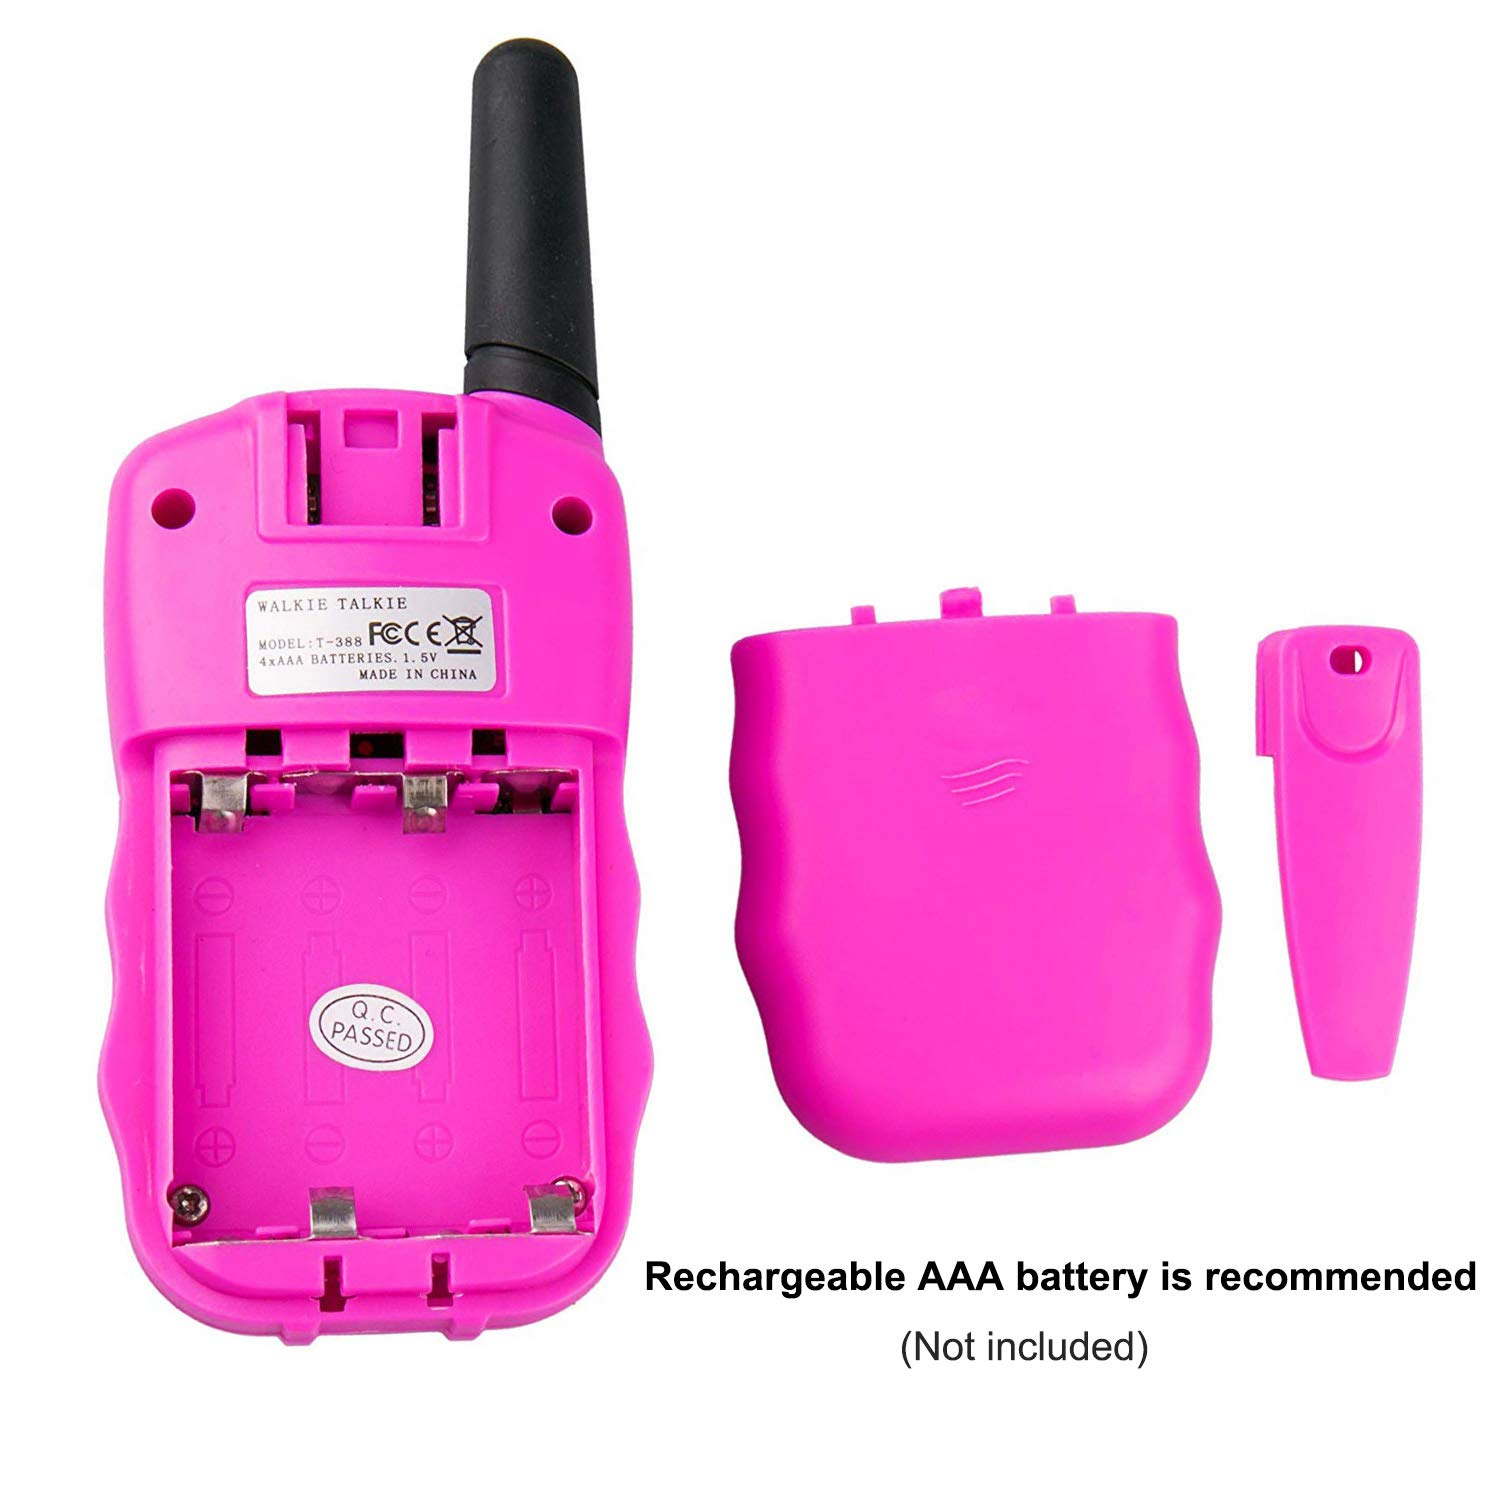 Qianghong T3 Kids Walkie Talkies 3-12 Year Old Children's Outdoor Toys Mini Two Way Radios UHF 462-467 MHz Frequency 22 Channels (Pink&Yellow&Blue) by Qianghong (Image #5)